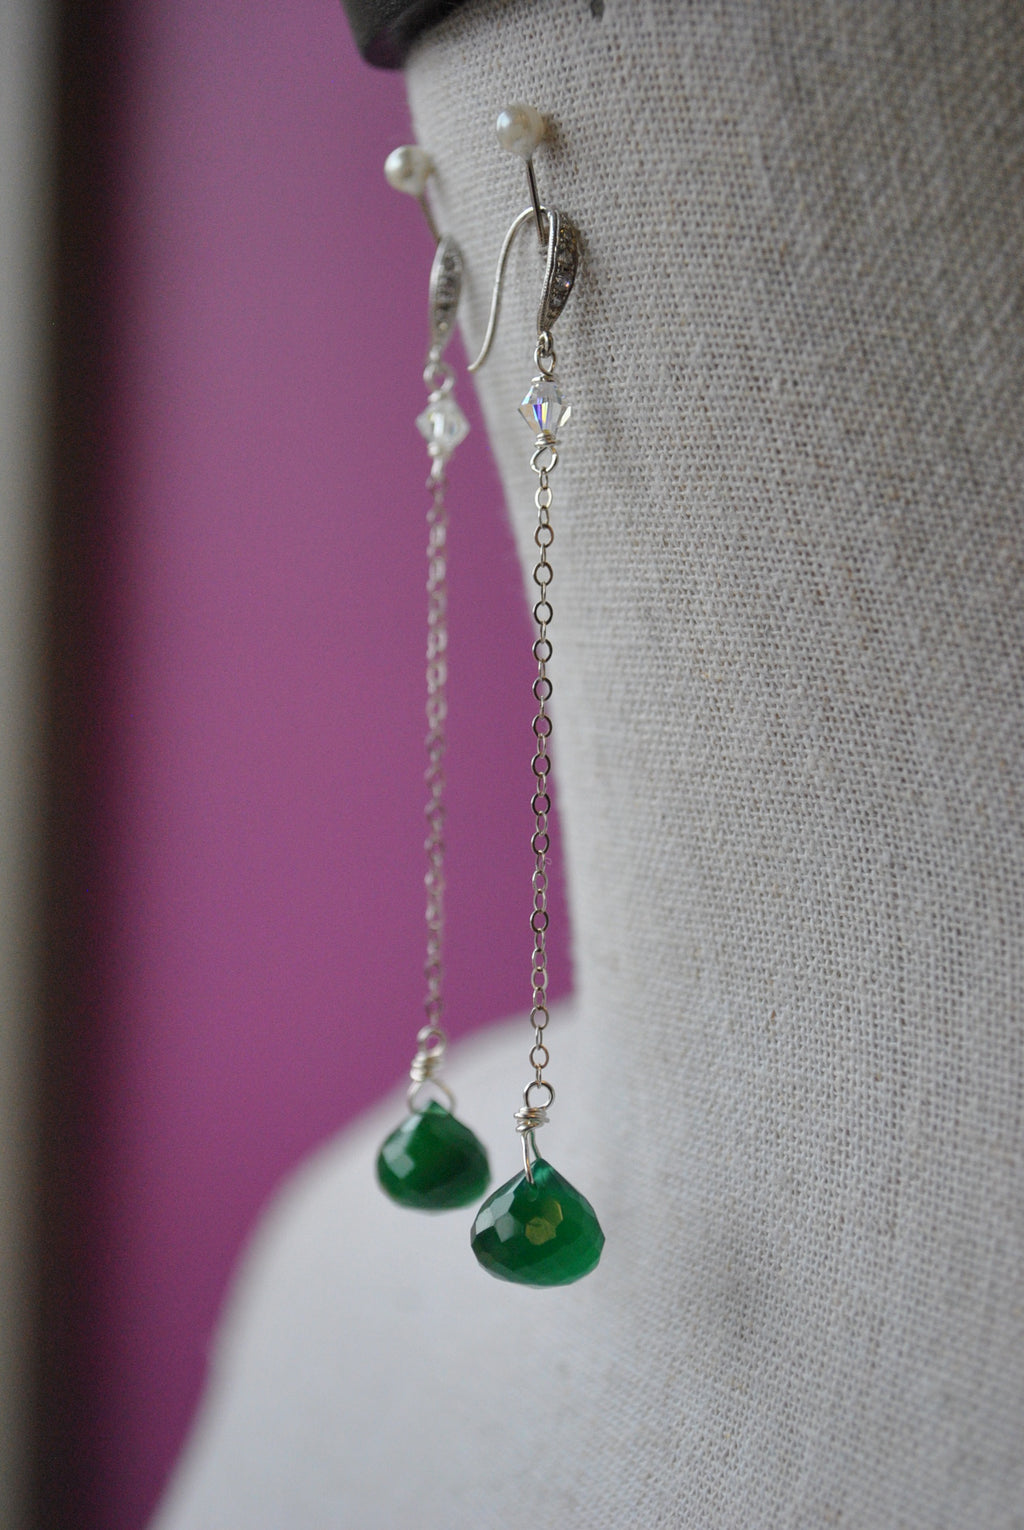 GREEN ONYX TEARDROP AND SWAROVSKI CRYSTALS DELICATE CHAIN LONG EARRINGS